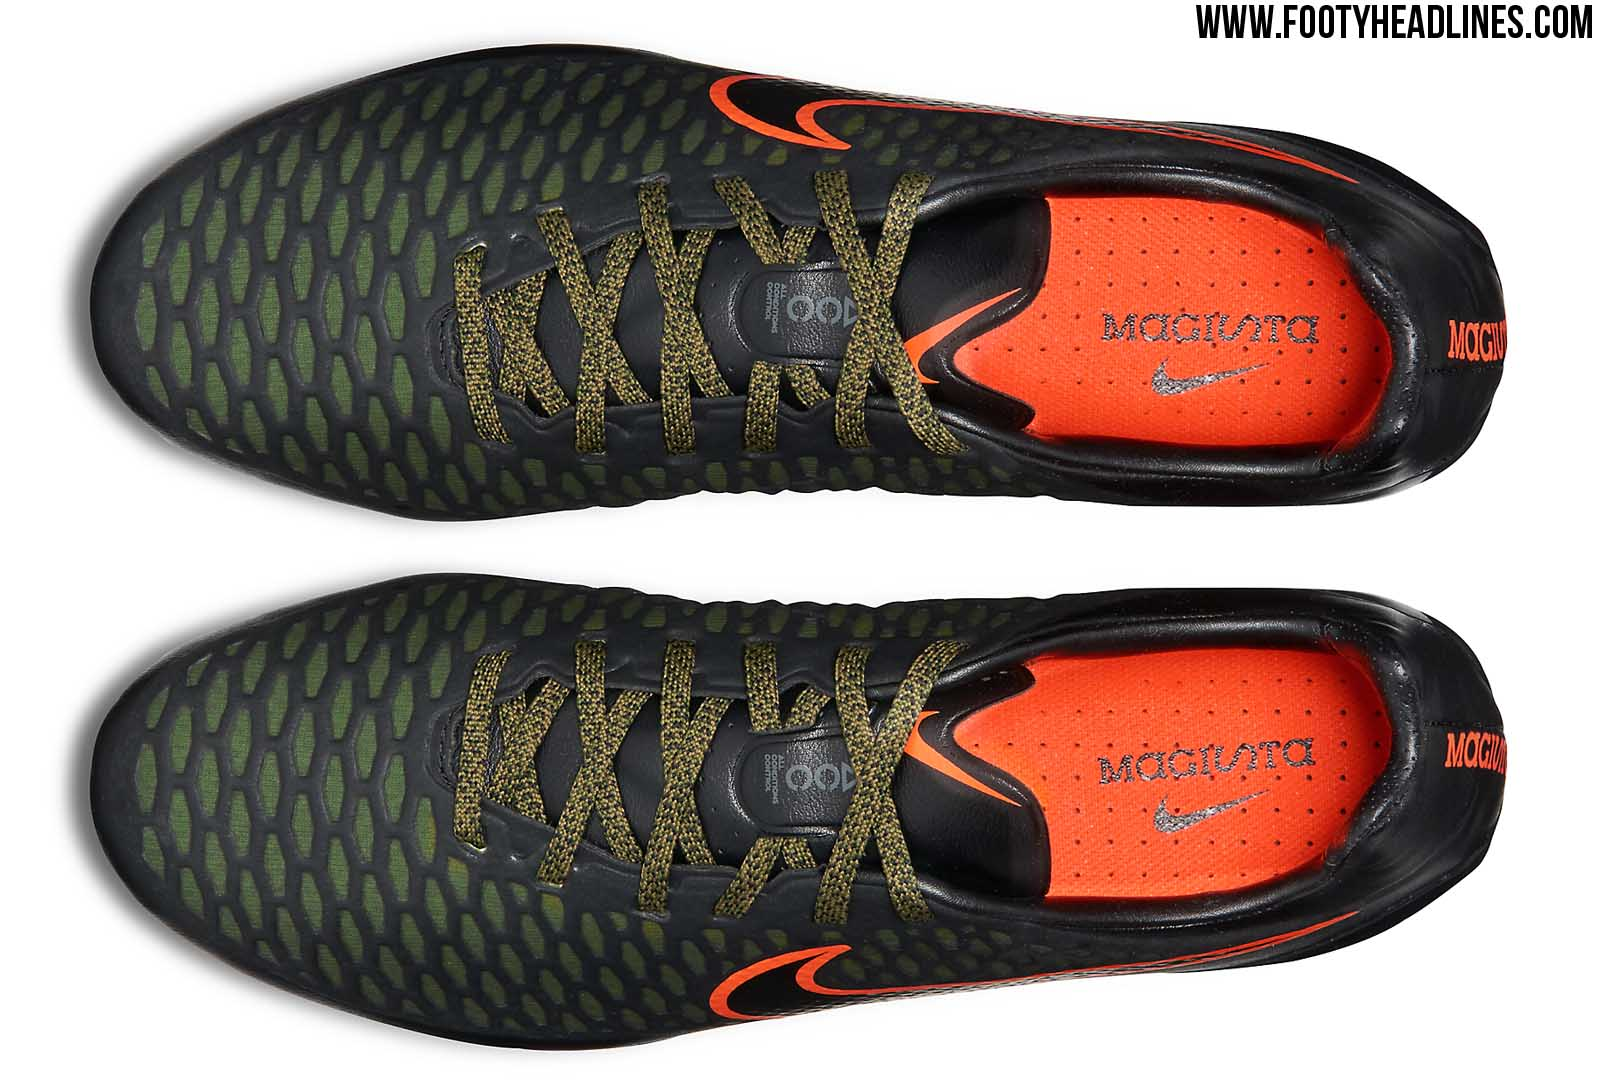 Black Orange Nike Magista Opus Summer 2015 Boots